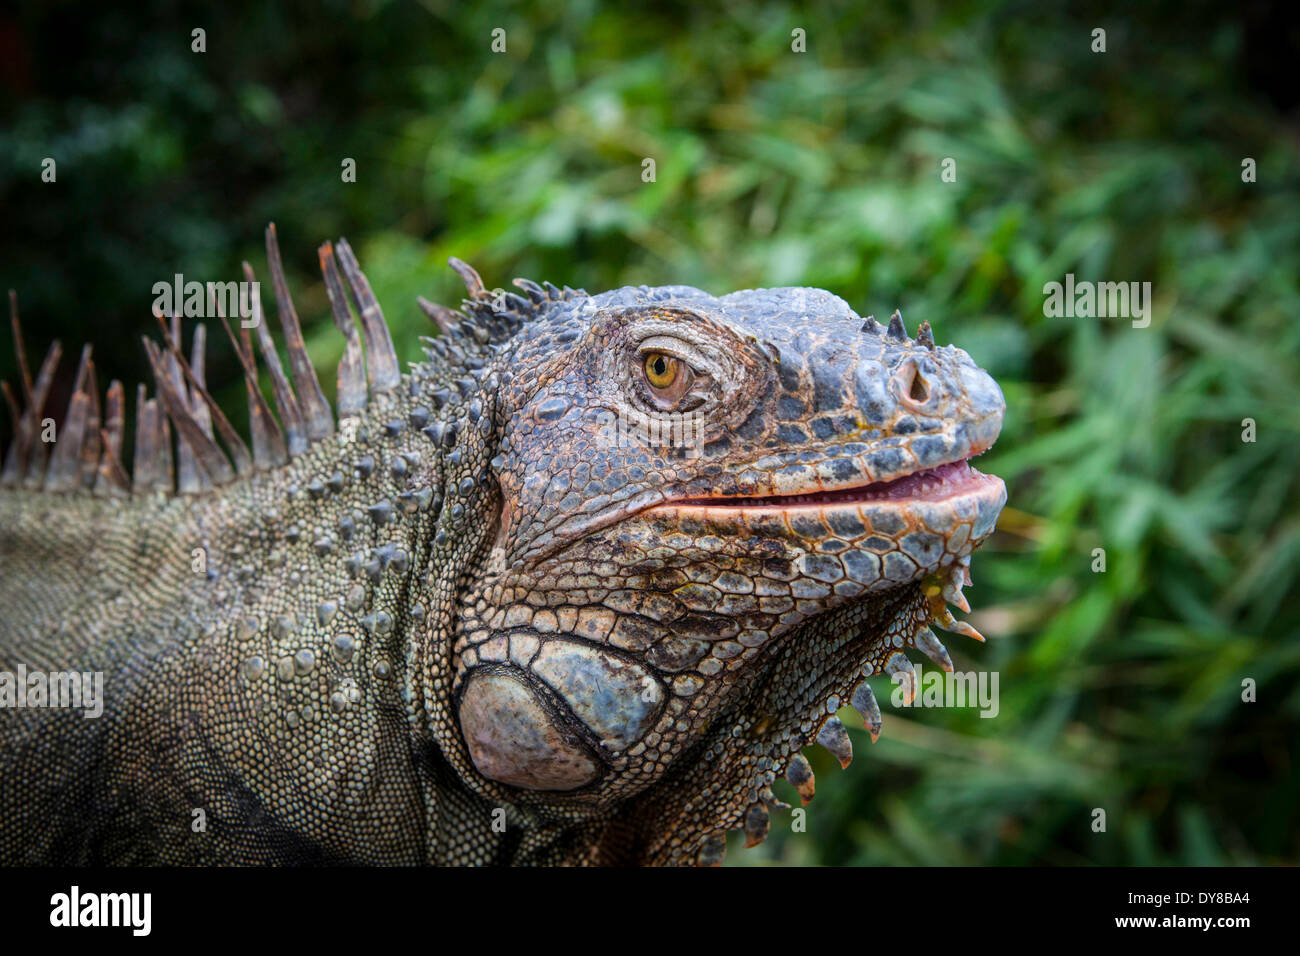 Green Iguana emerges from Costa Rican jungle in Central America - Stock Image